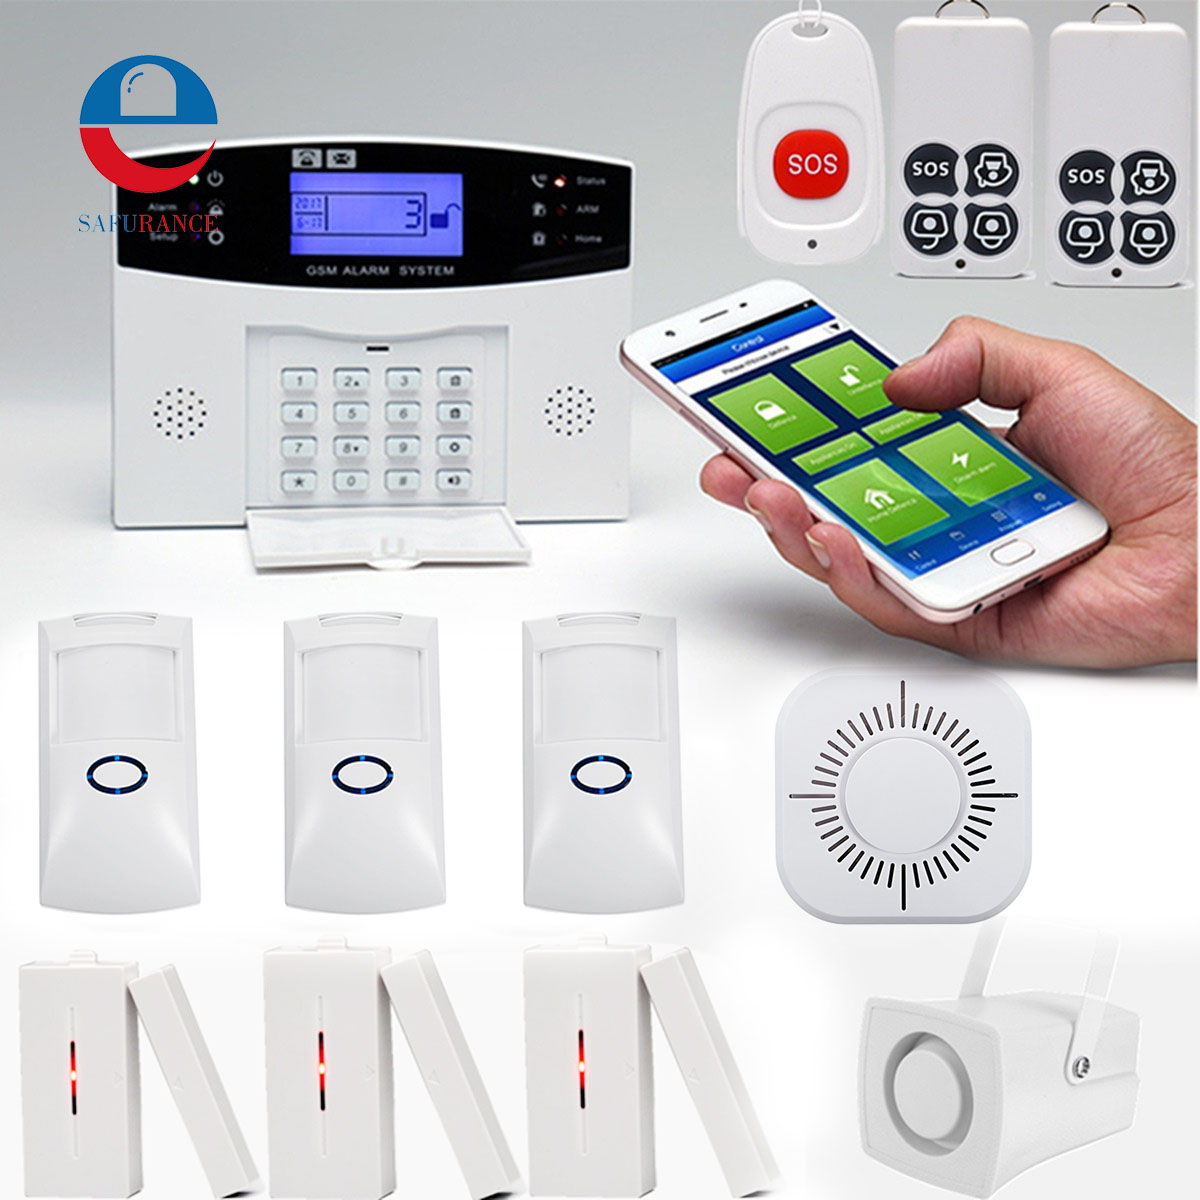 Wireless GSM Alarm System Intelligent APP Control LCD GSM SMS Burglar Alarm System Kit Auto Dialer Home Security Protection Safe yobangsecurity wireless gsm wifi home security burglar alarm system kit auto dialing dialer android ios app wireless siren